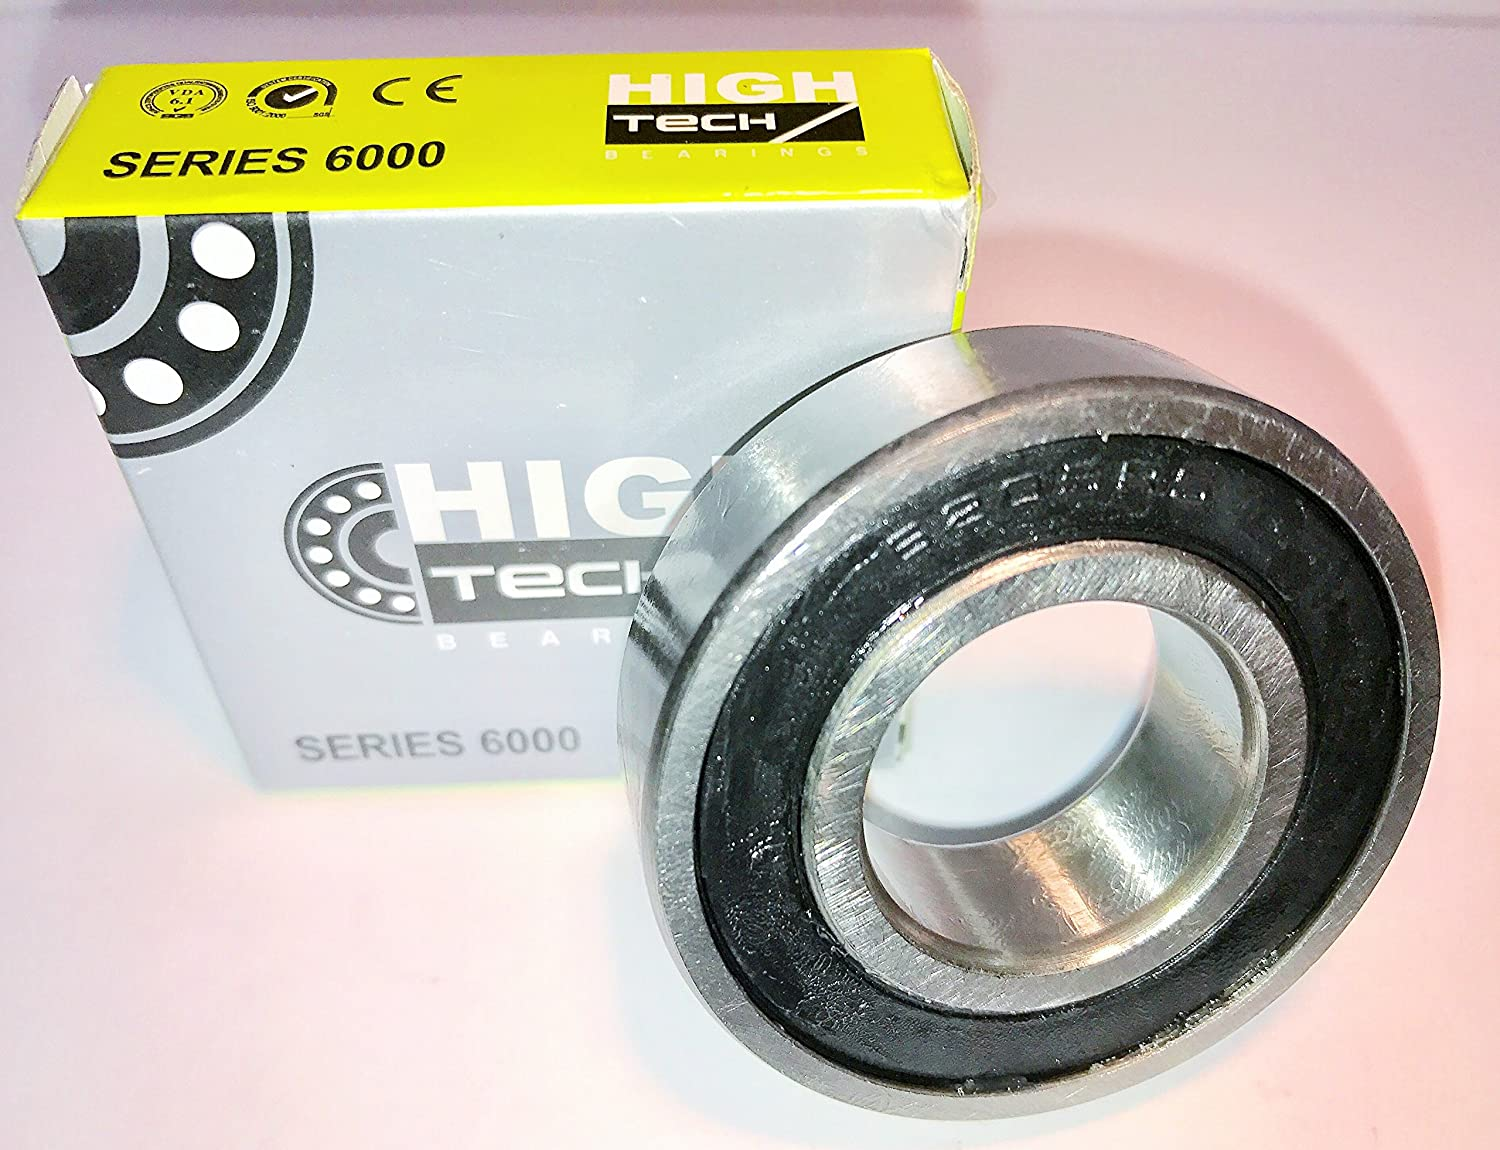 1 6205-2RS Sealed Bearing 25x52x15 Ball Bearing//Pre-Lubricated One